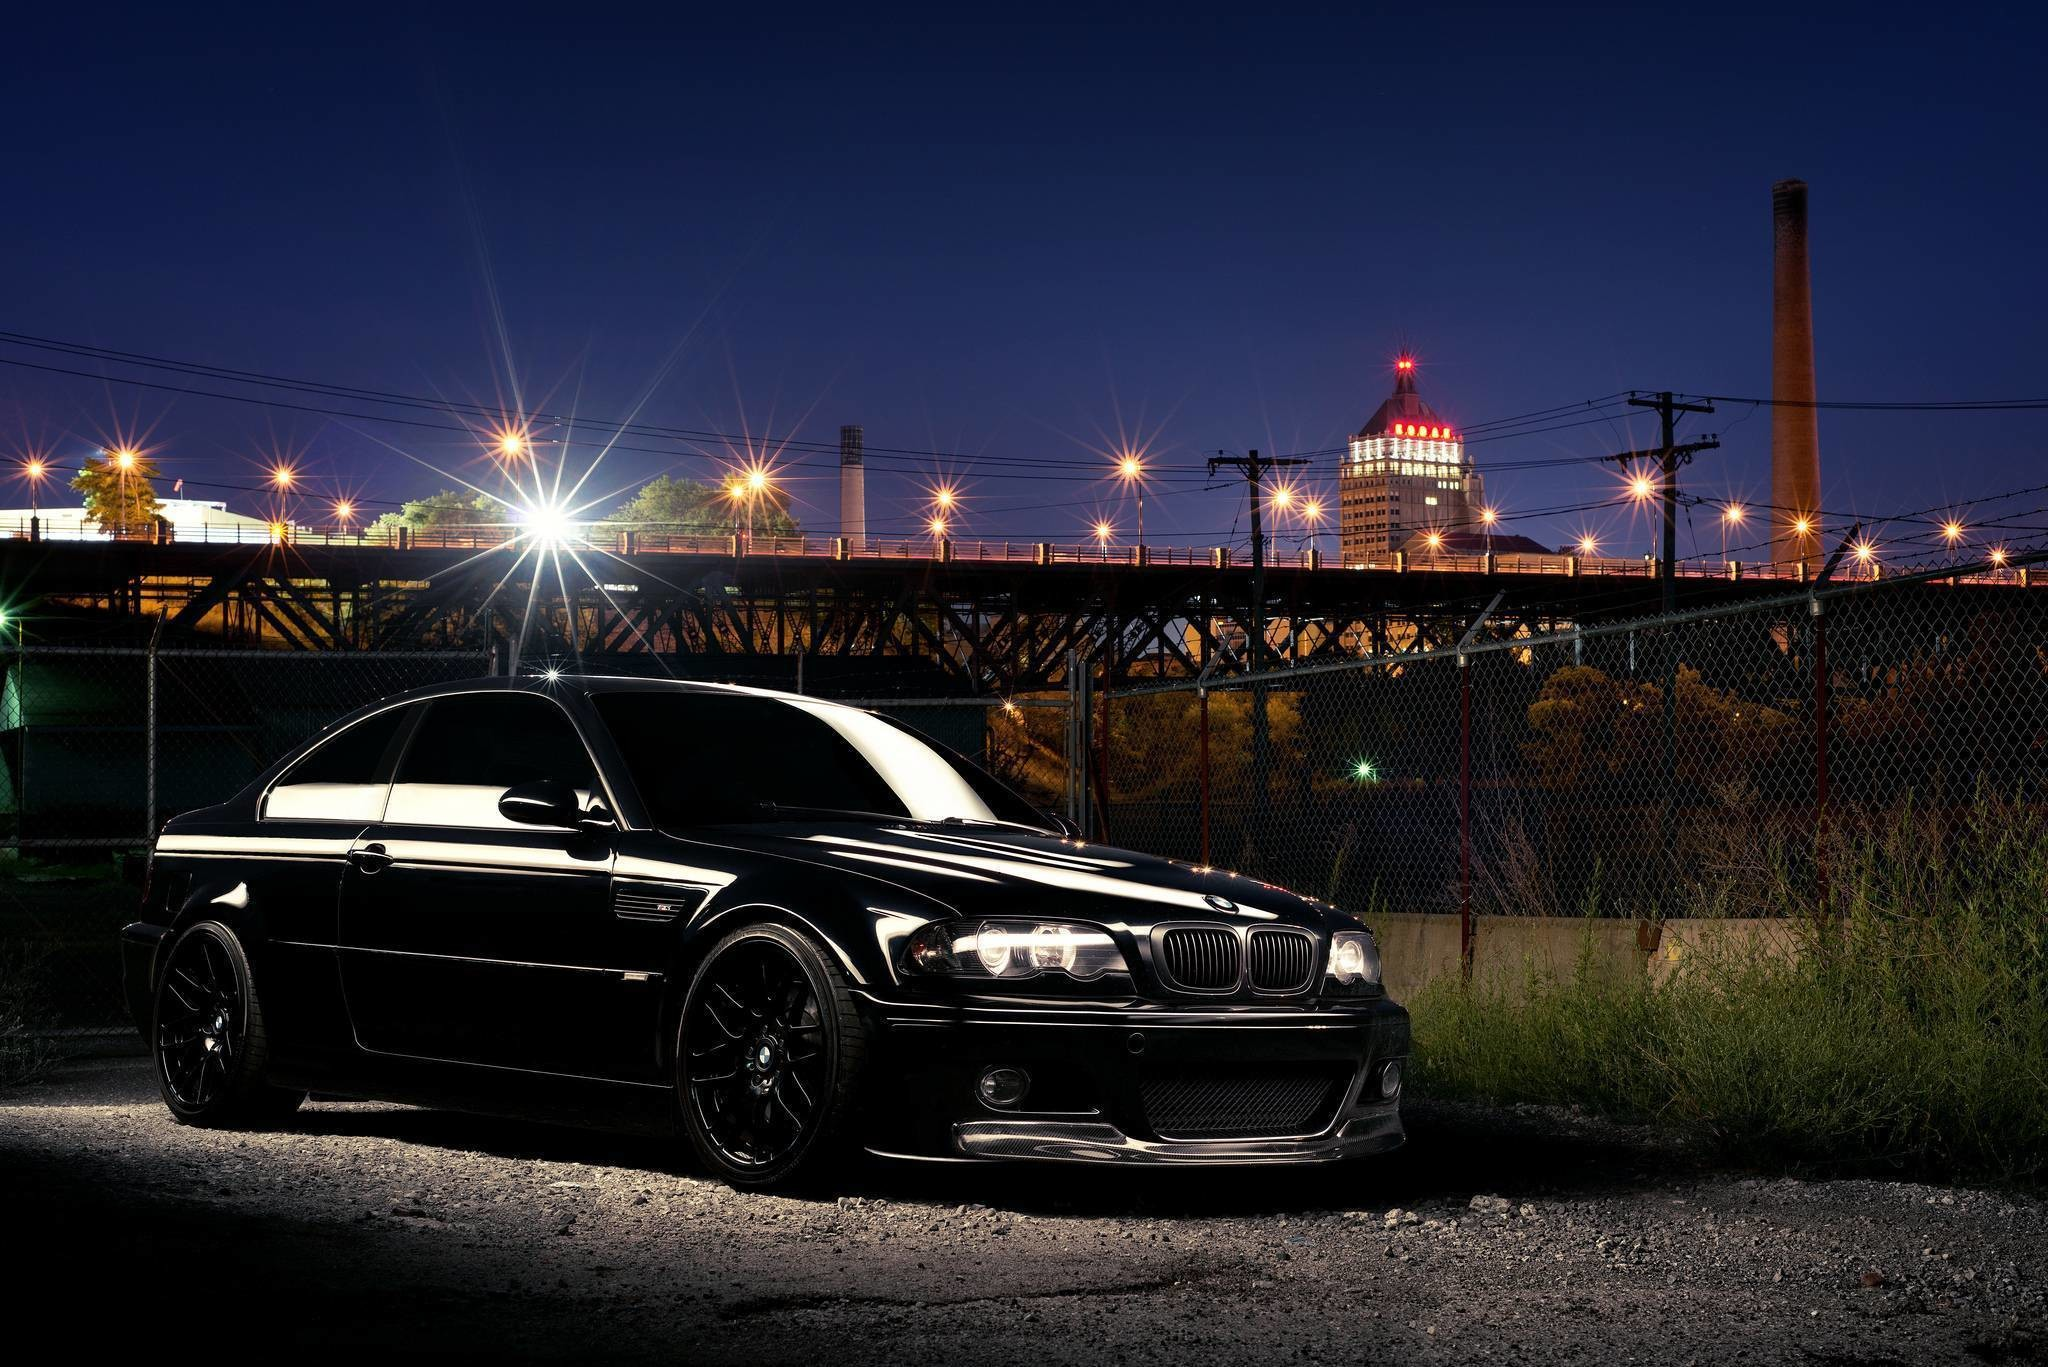 2048x1367 Bmw E46 M3 Wallpapers Wallpaper Cave E92 Widescreen